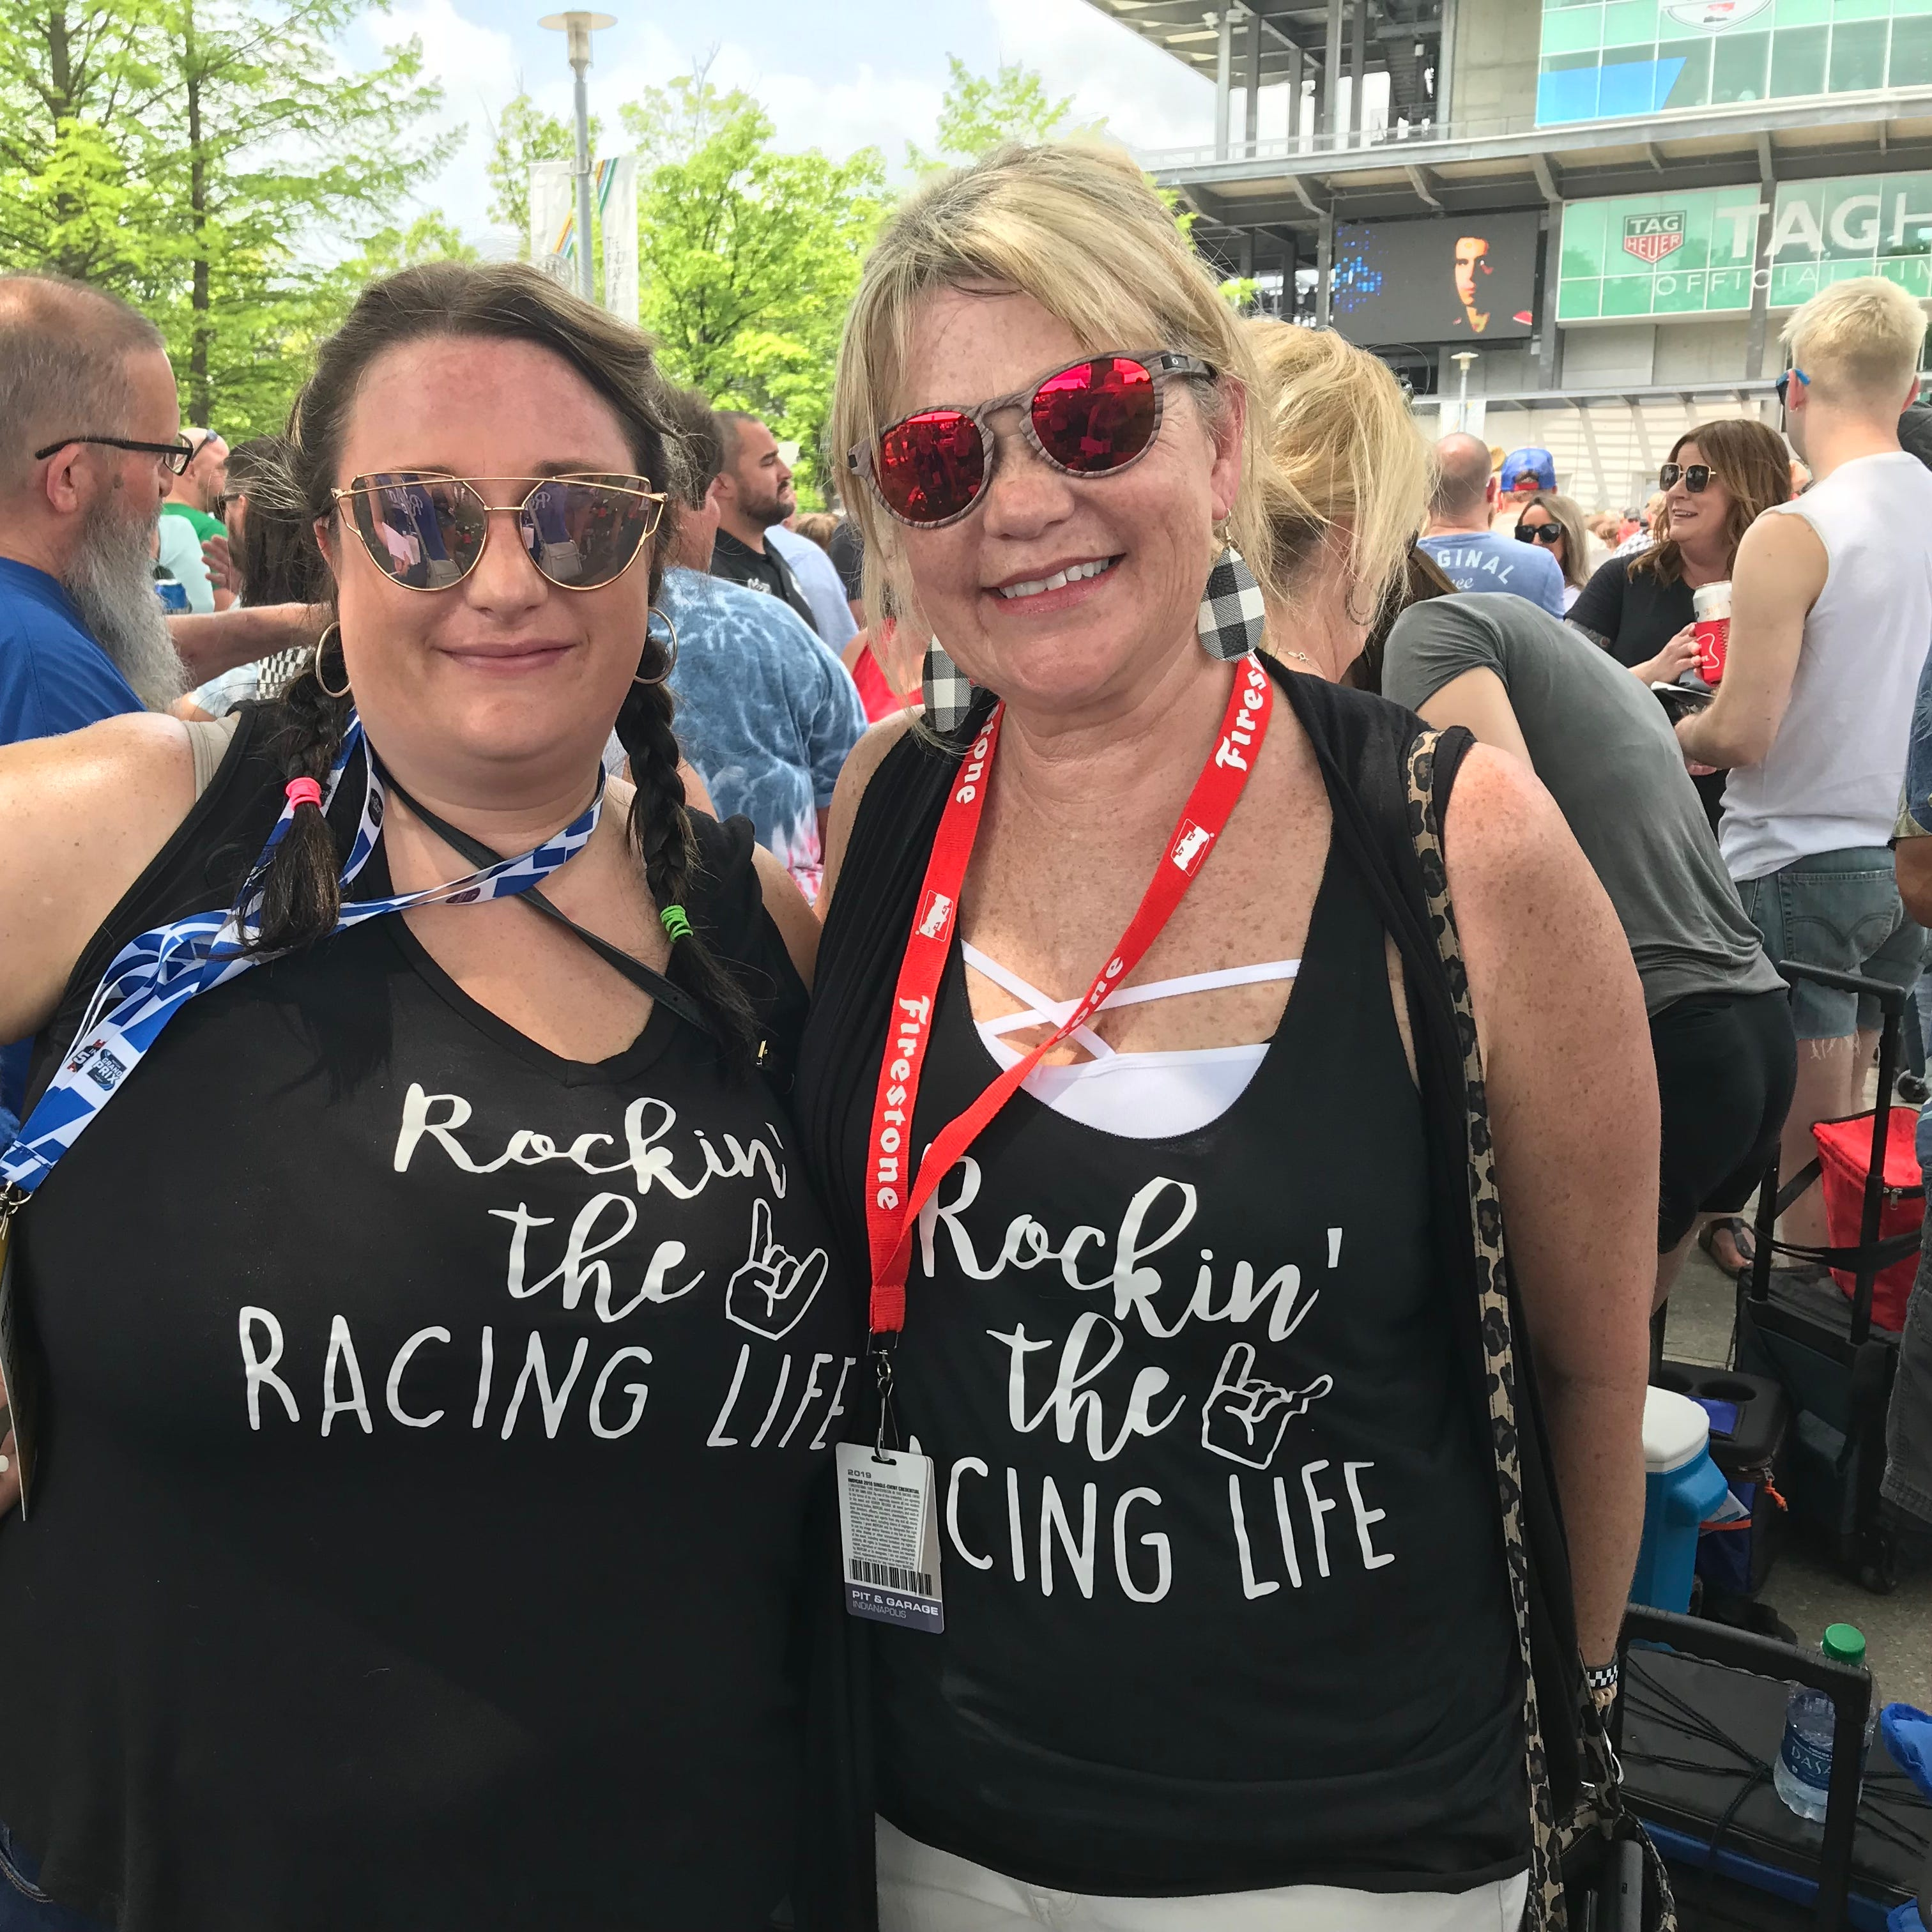 Indy 500 Carb Day 2019: 10 T-shirts that are clever, funny or downright ridiculous